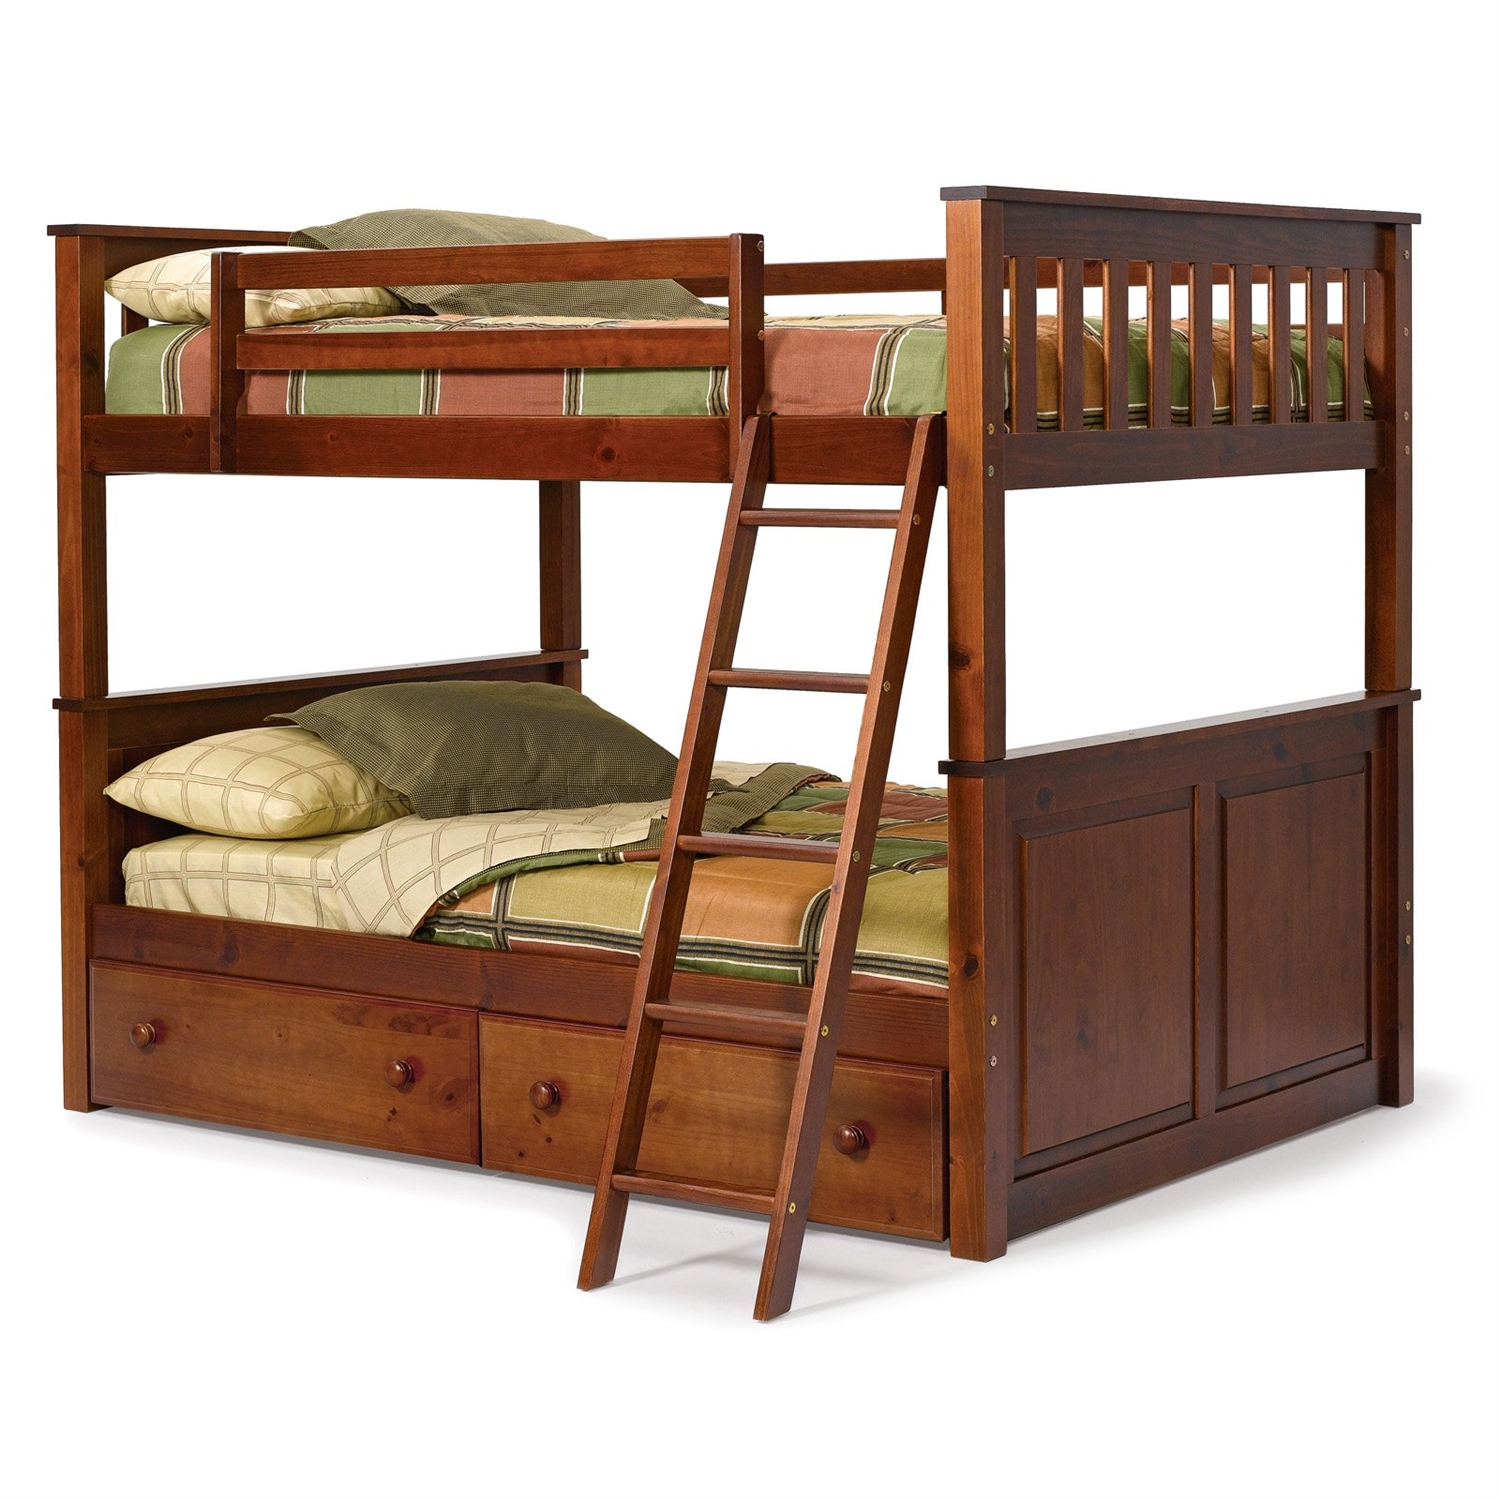 full over full size bunk bed in solid hardwood with chocolate brown finish - Loft Bed Frame Full